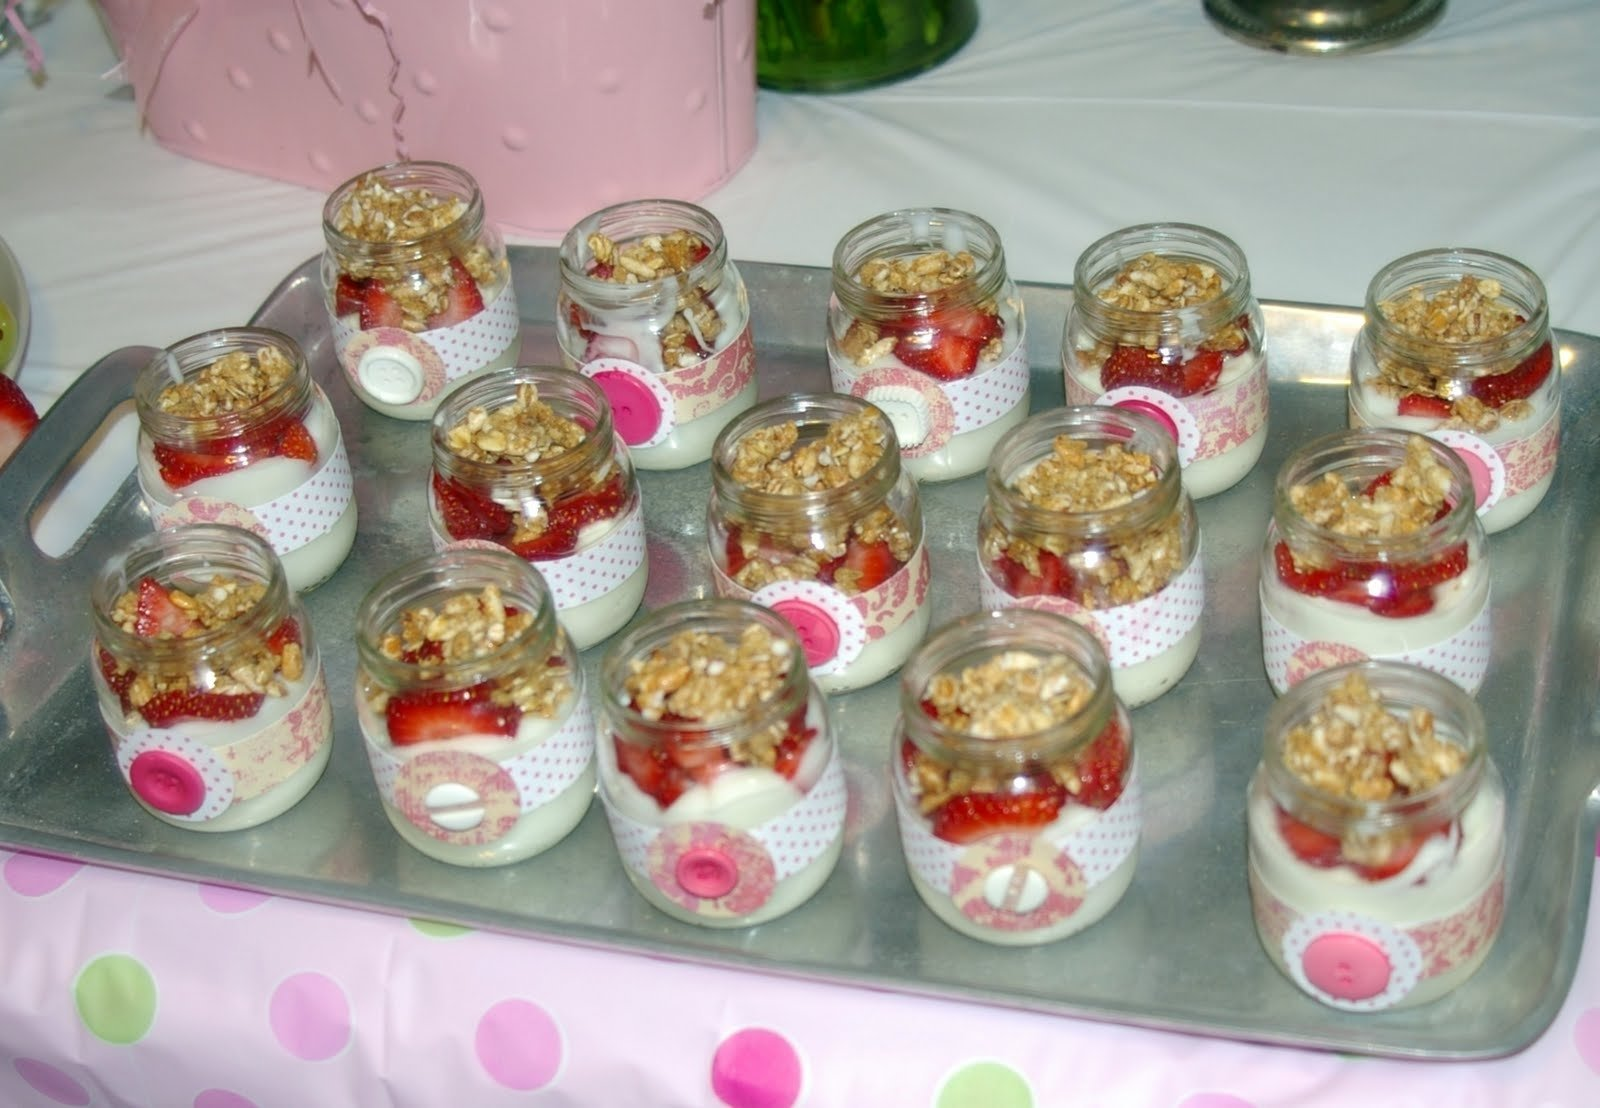 10 Fabulous Baby Shower Food Ideas For Girls extremely creative cute baby shower food ideas themes recipes for a 2020